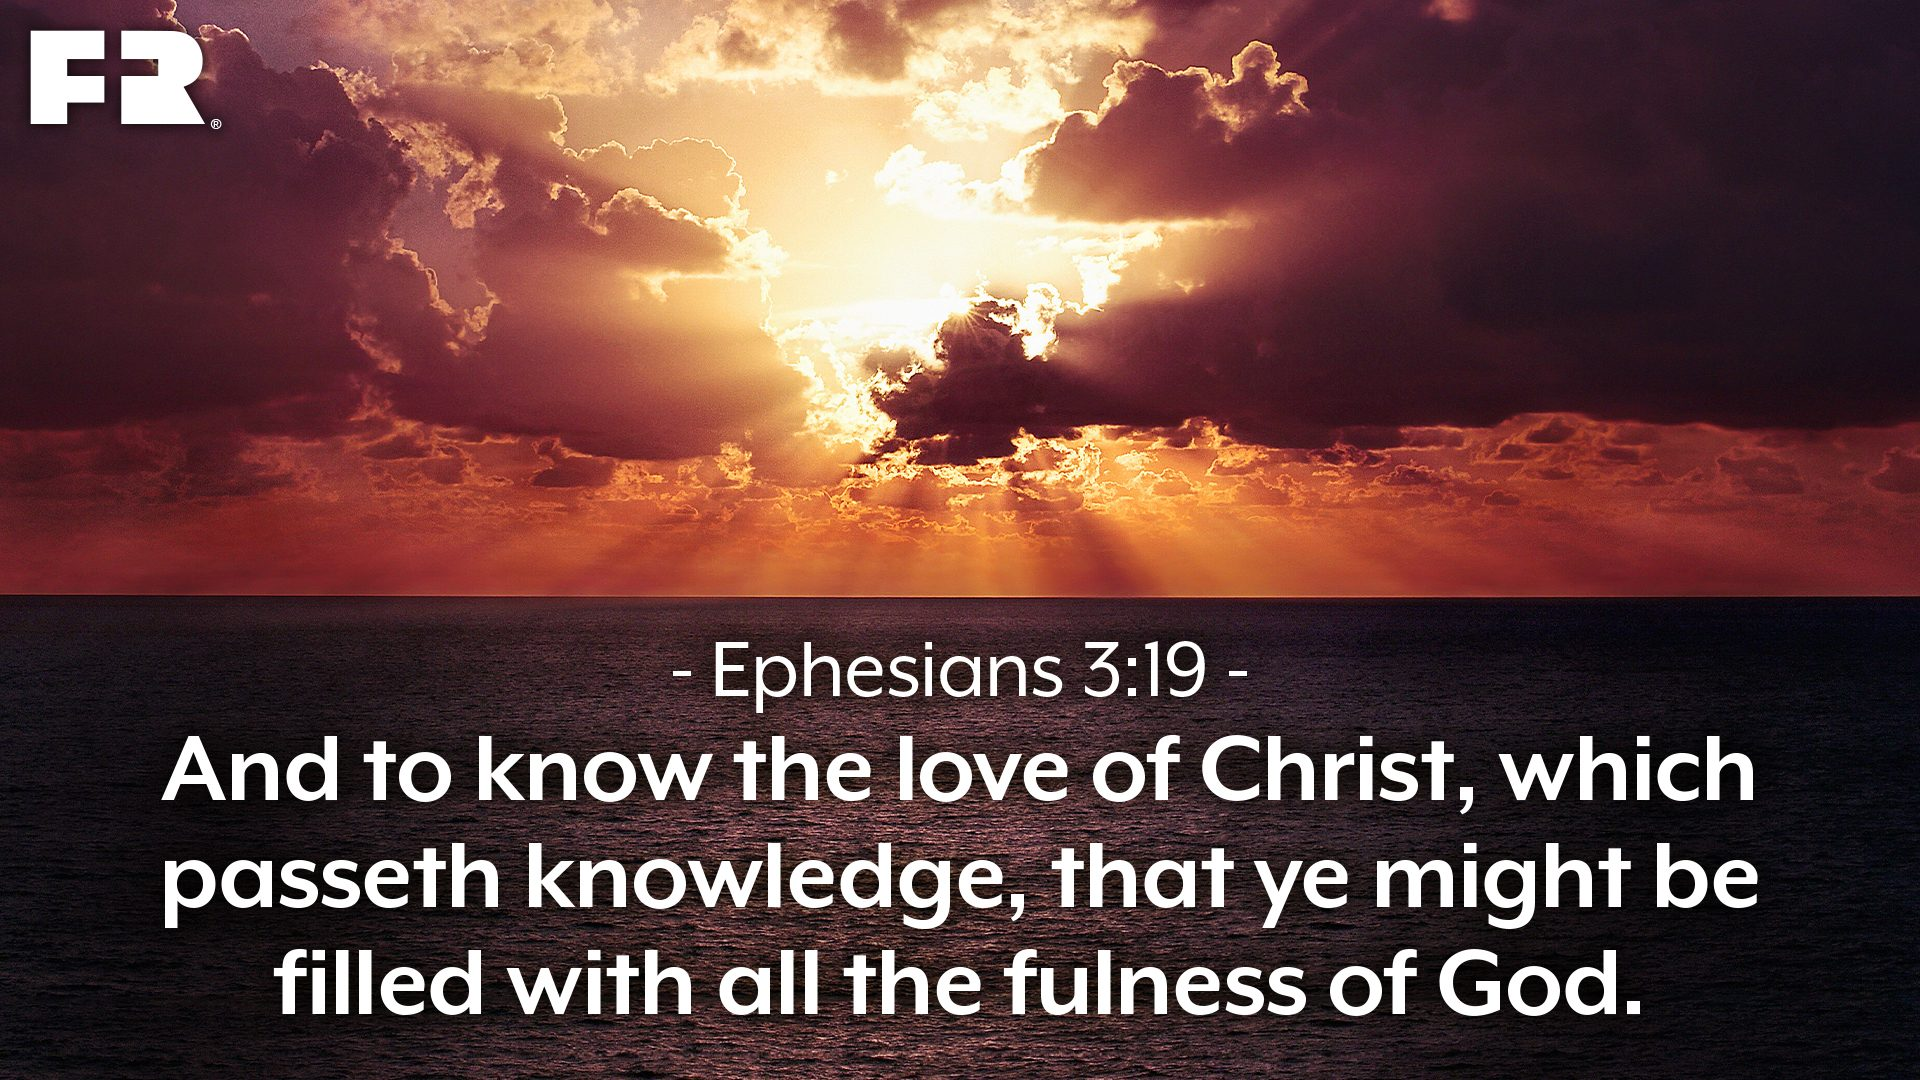 """And to know the love of Christ, which passeth knowledge, that ye might be filled with all the fulness of God."""